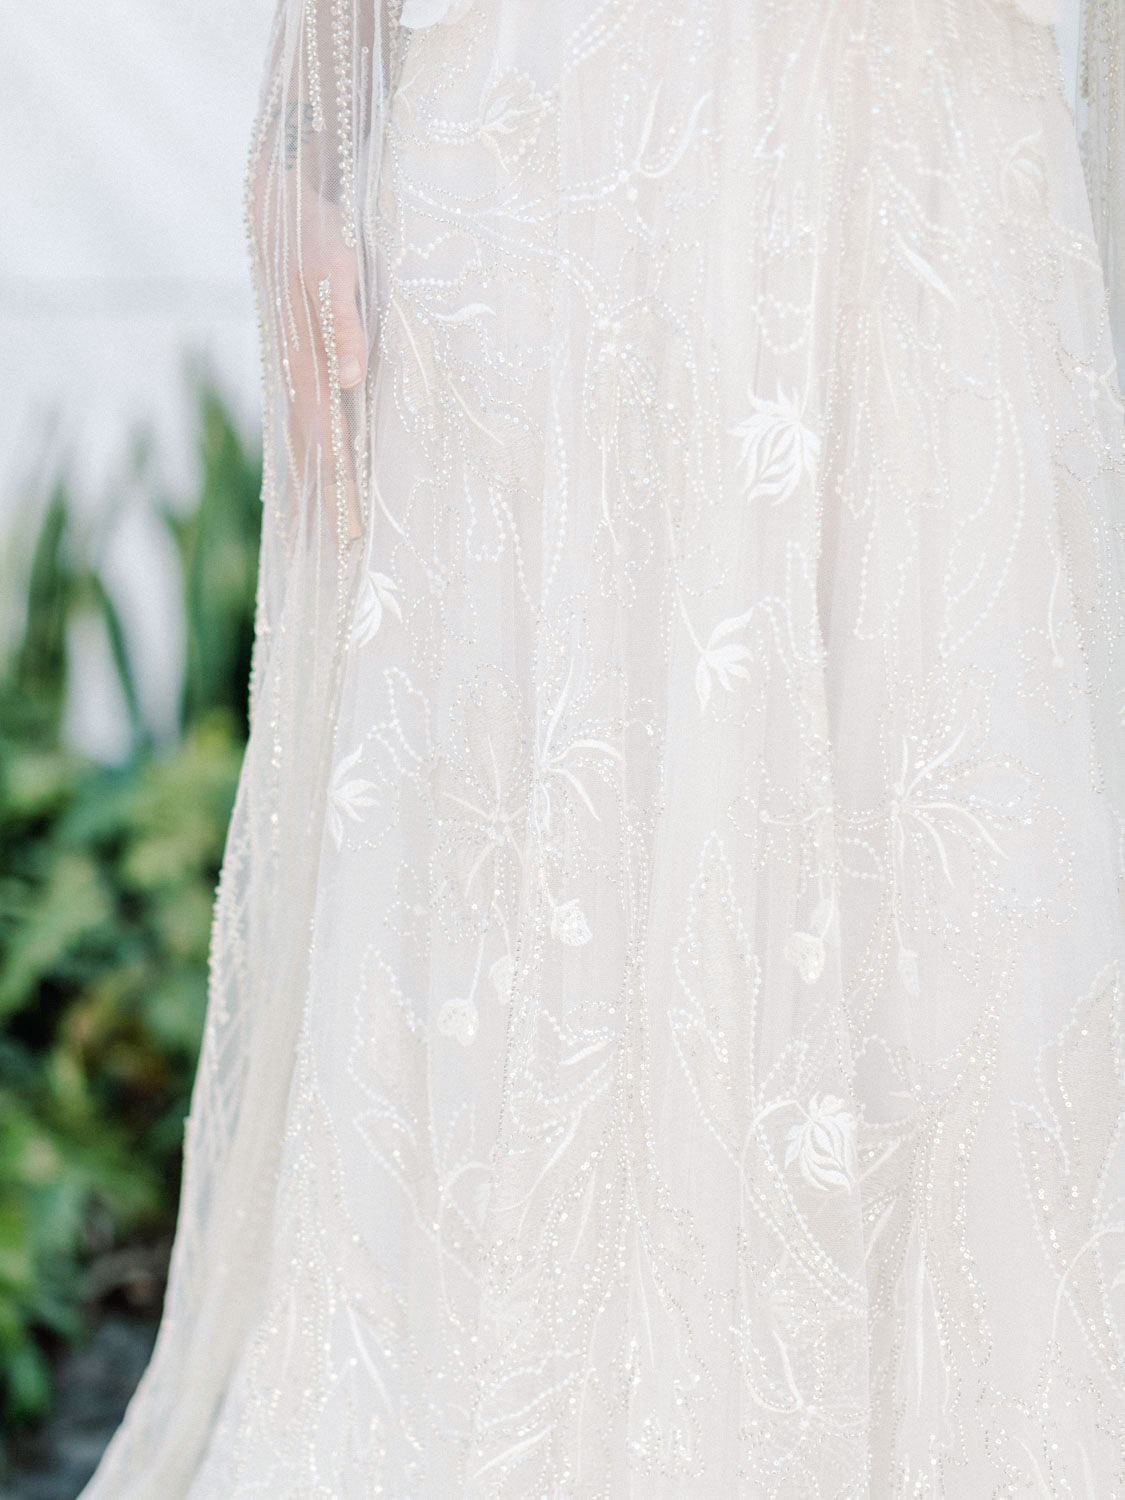 Neta Dover Camila - A Luxury Wedding Dress with floral beading. Cavin Elizabeth Photography